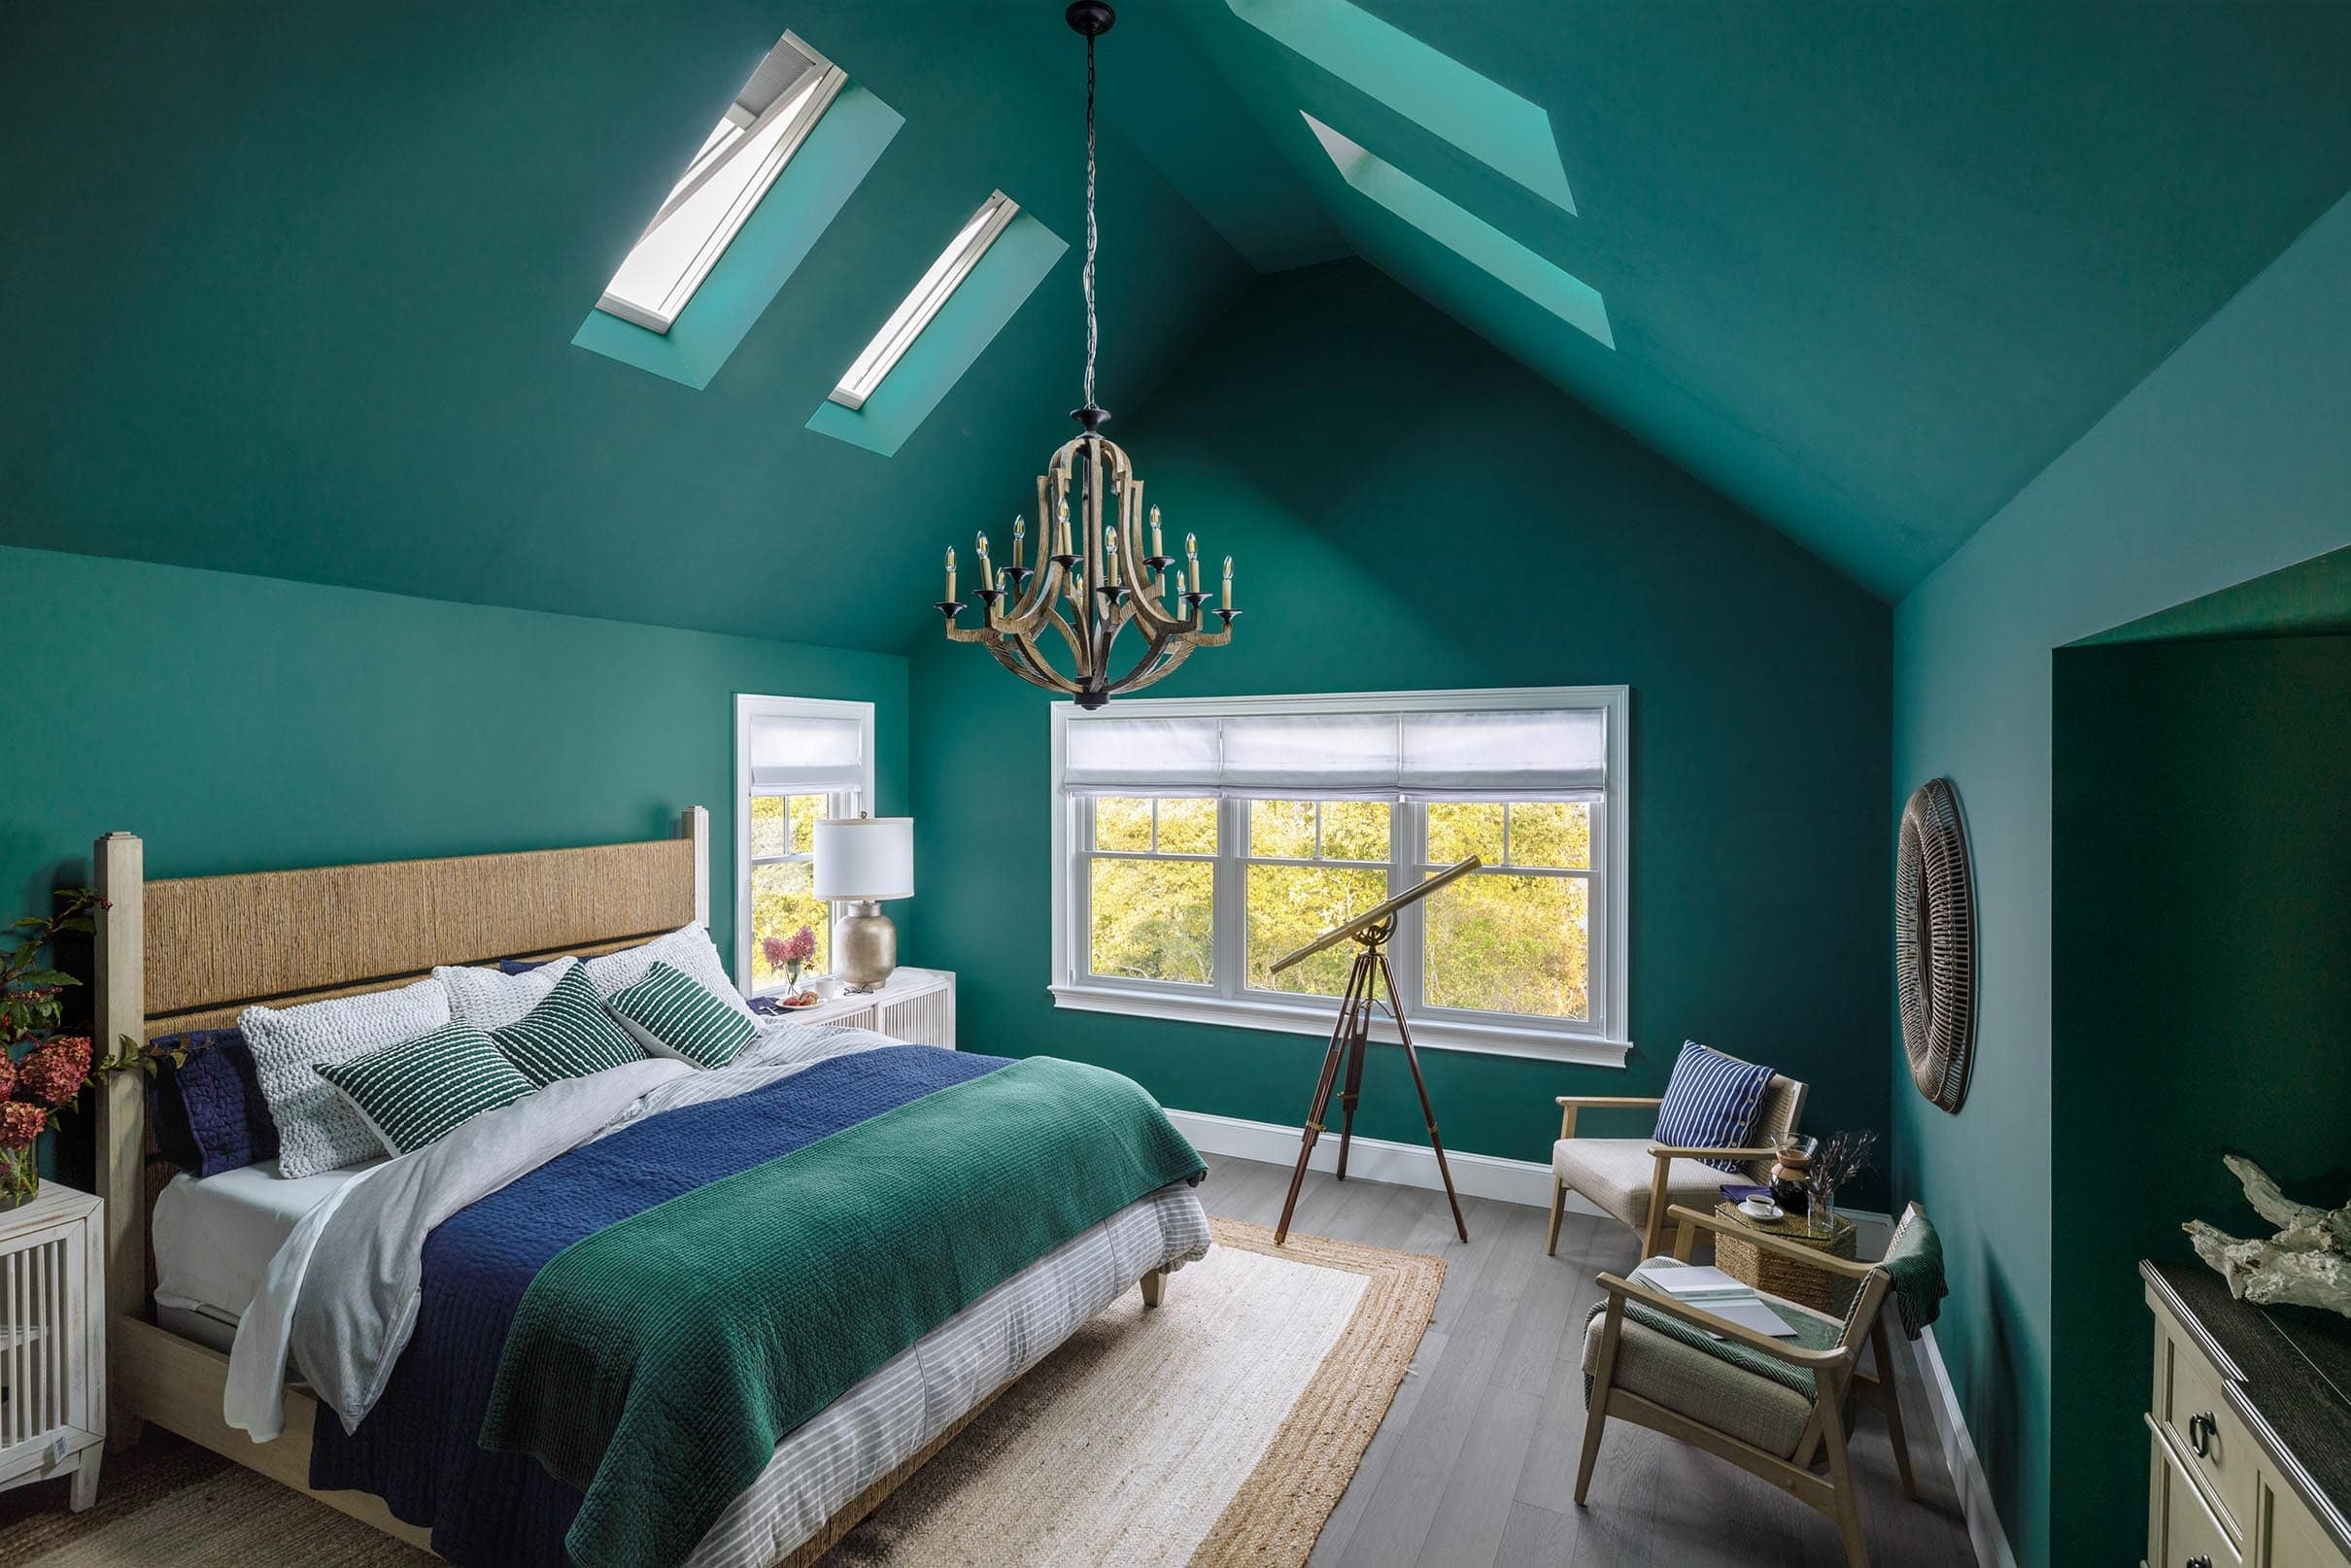 Bedroom painted dark green with four skylights